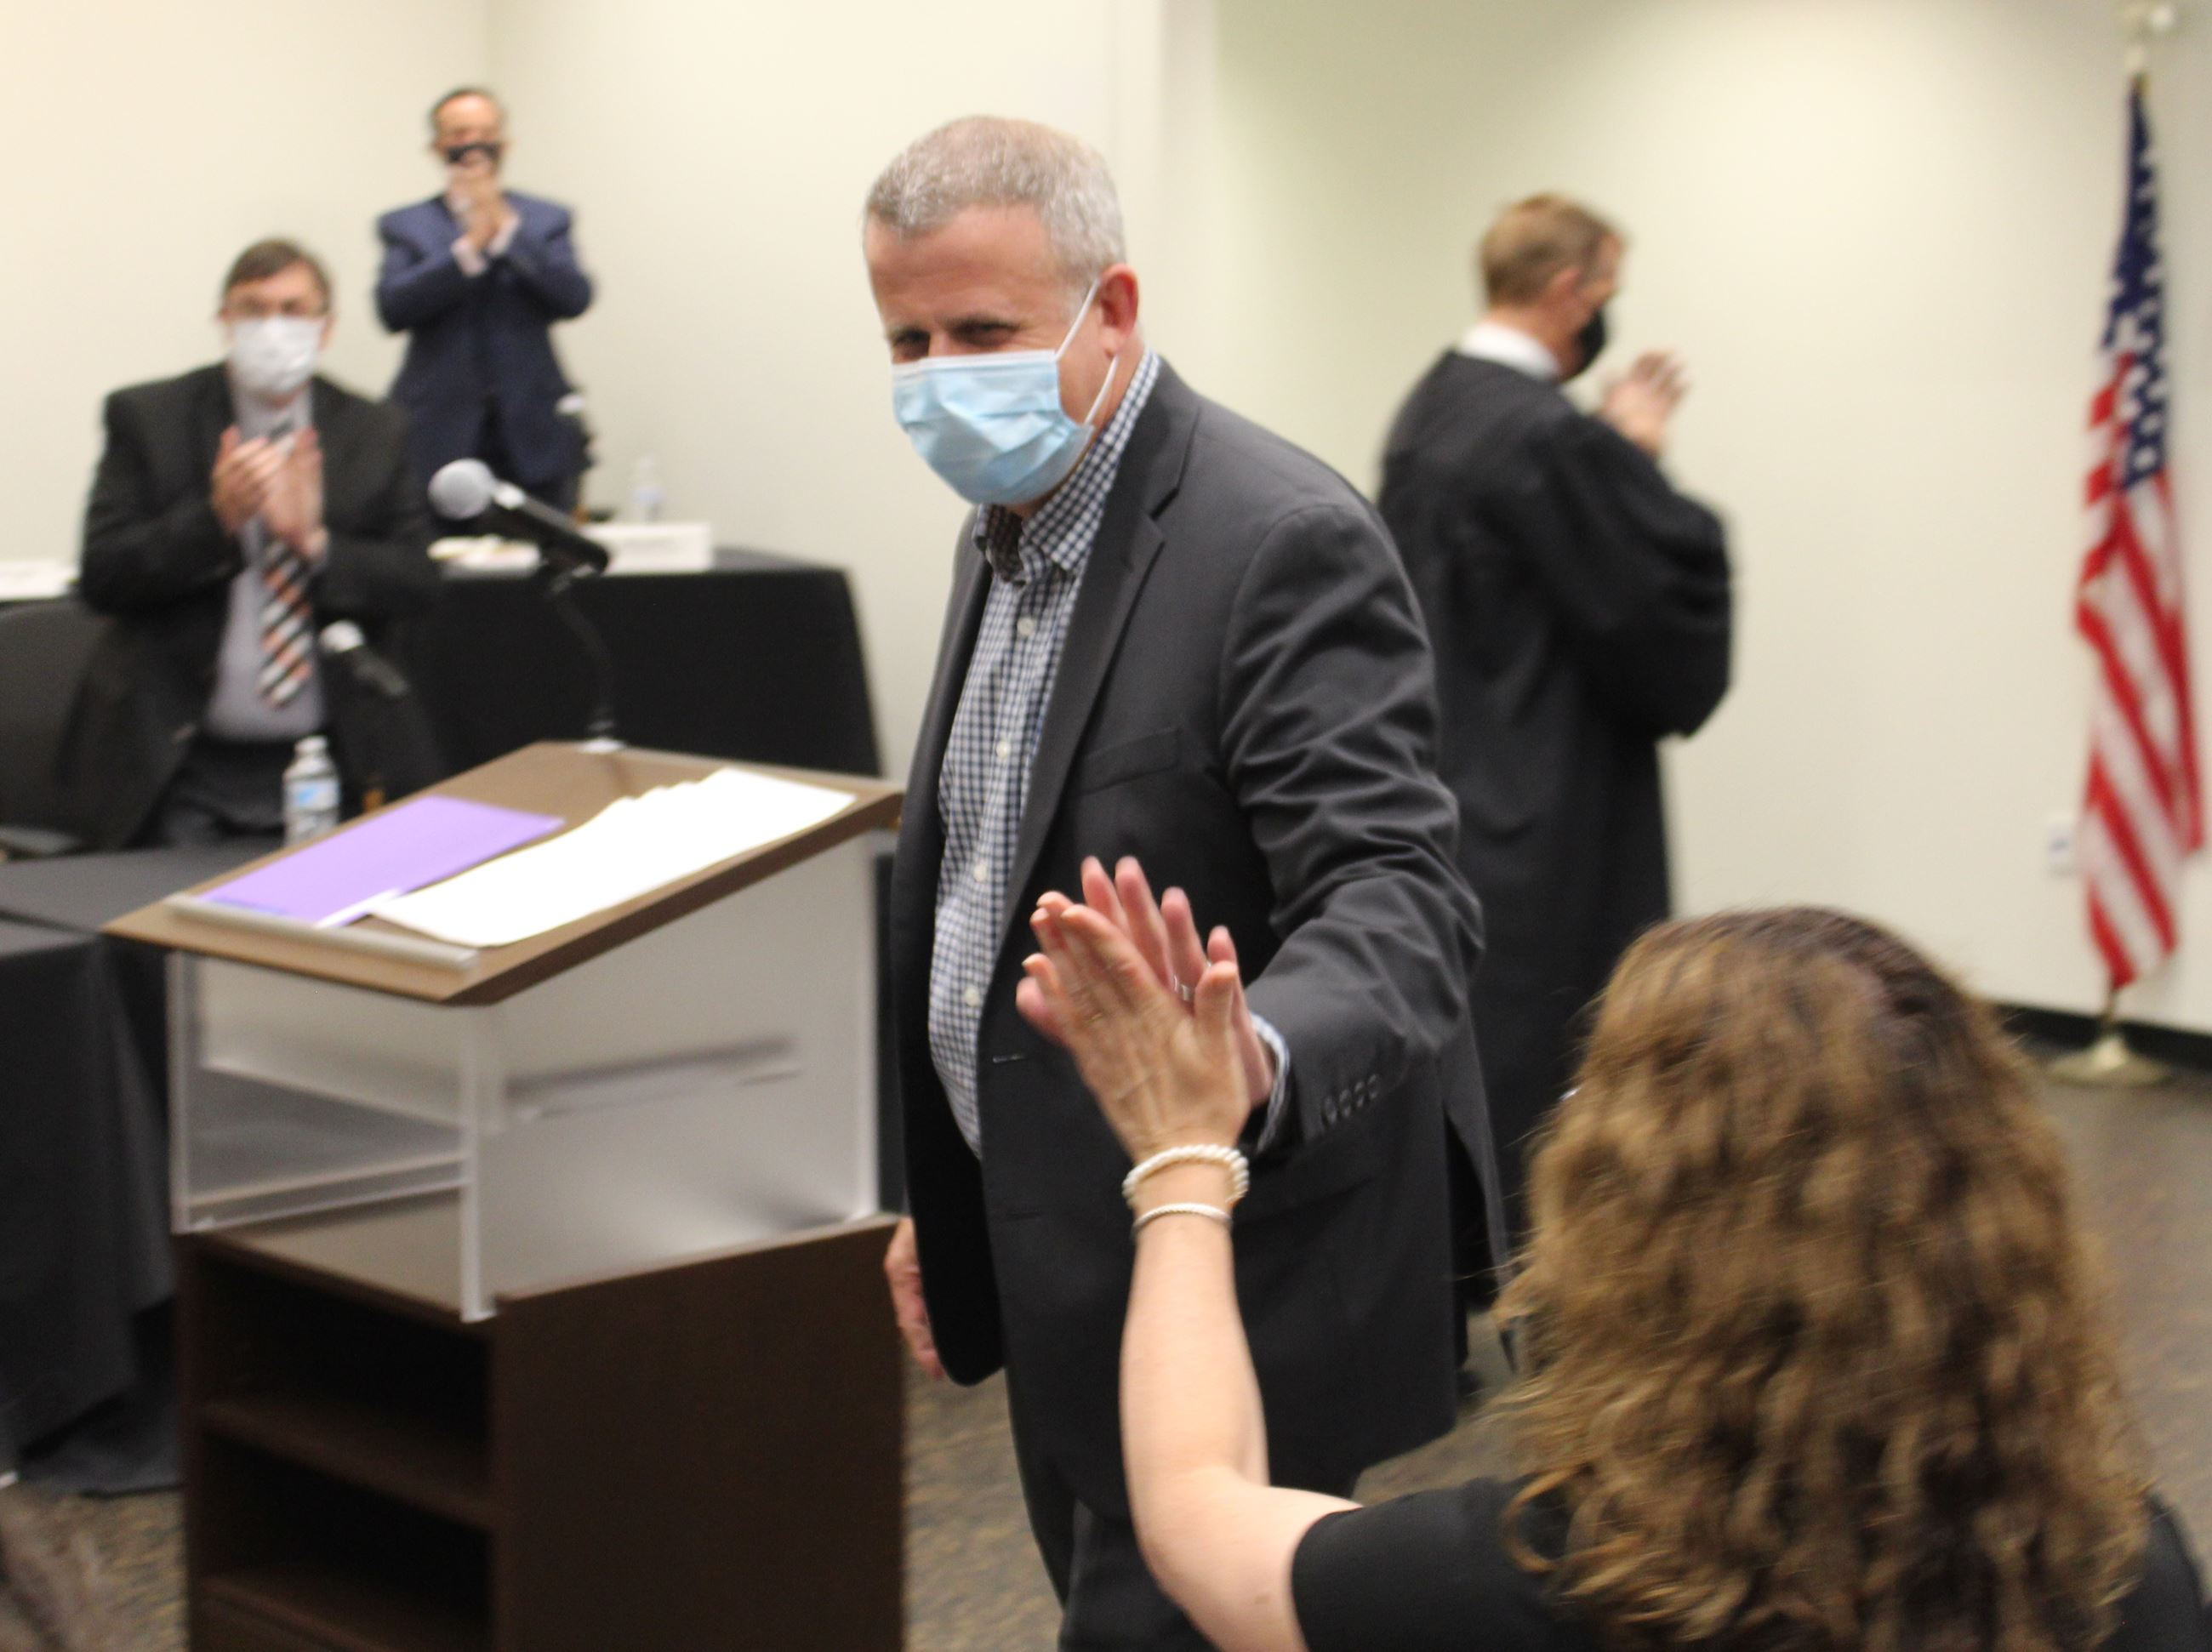 Mayor Cohen Barnes gives high fives to family members after taking the oath of office.